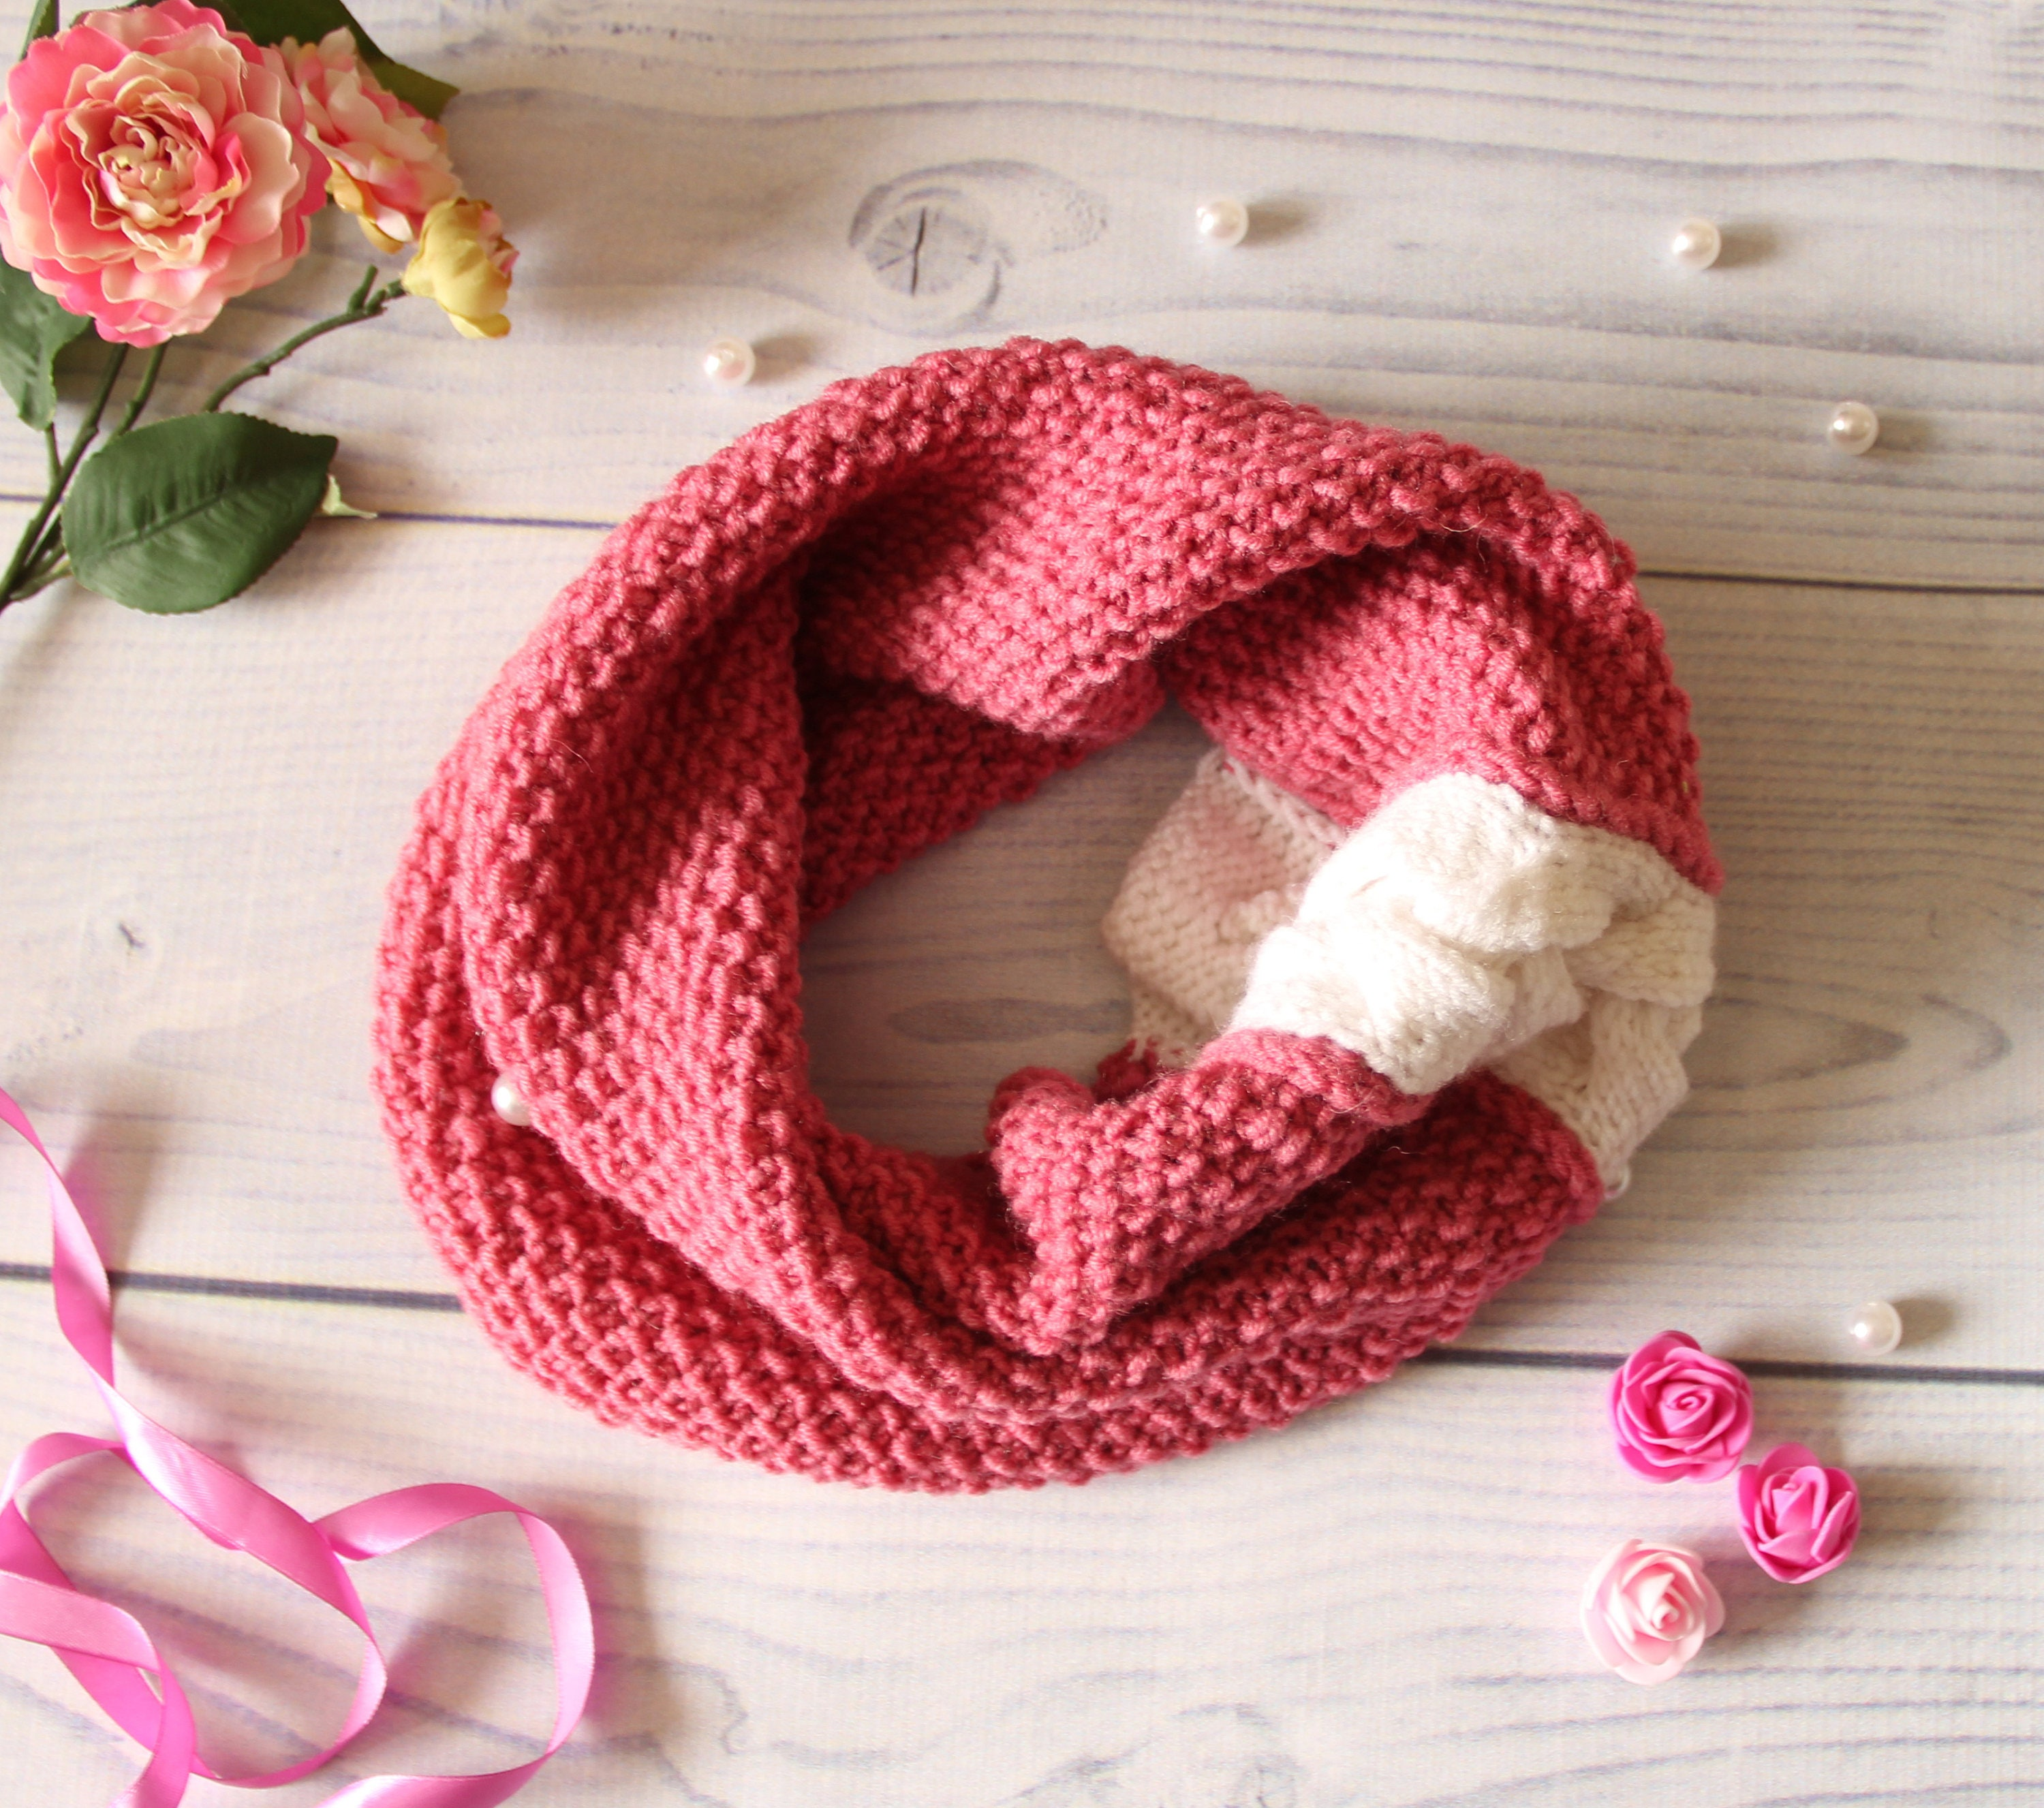 28 Infinity Scarf Knitting Patterns - The Funky Stitch